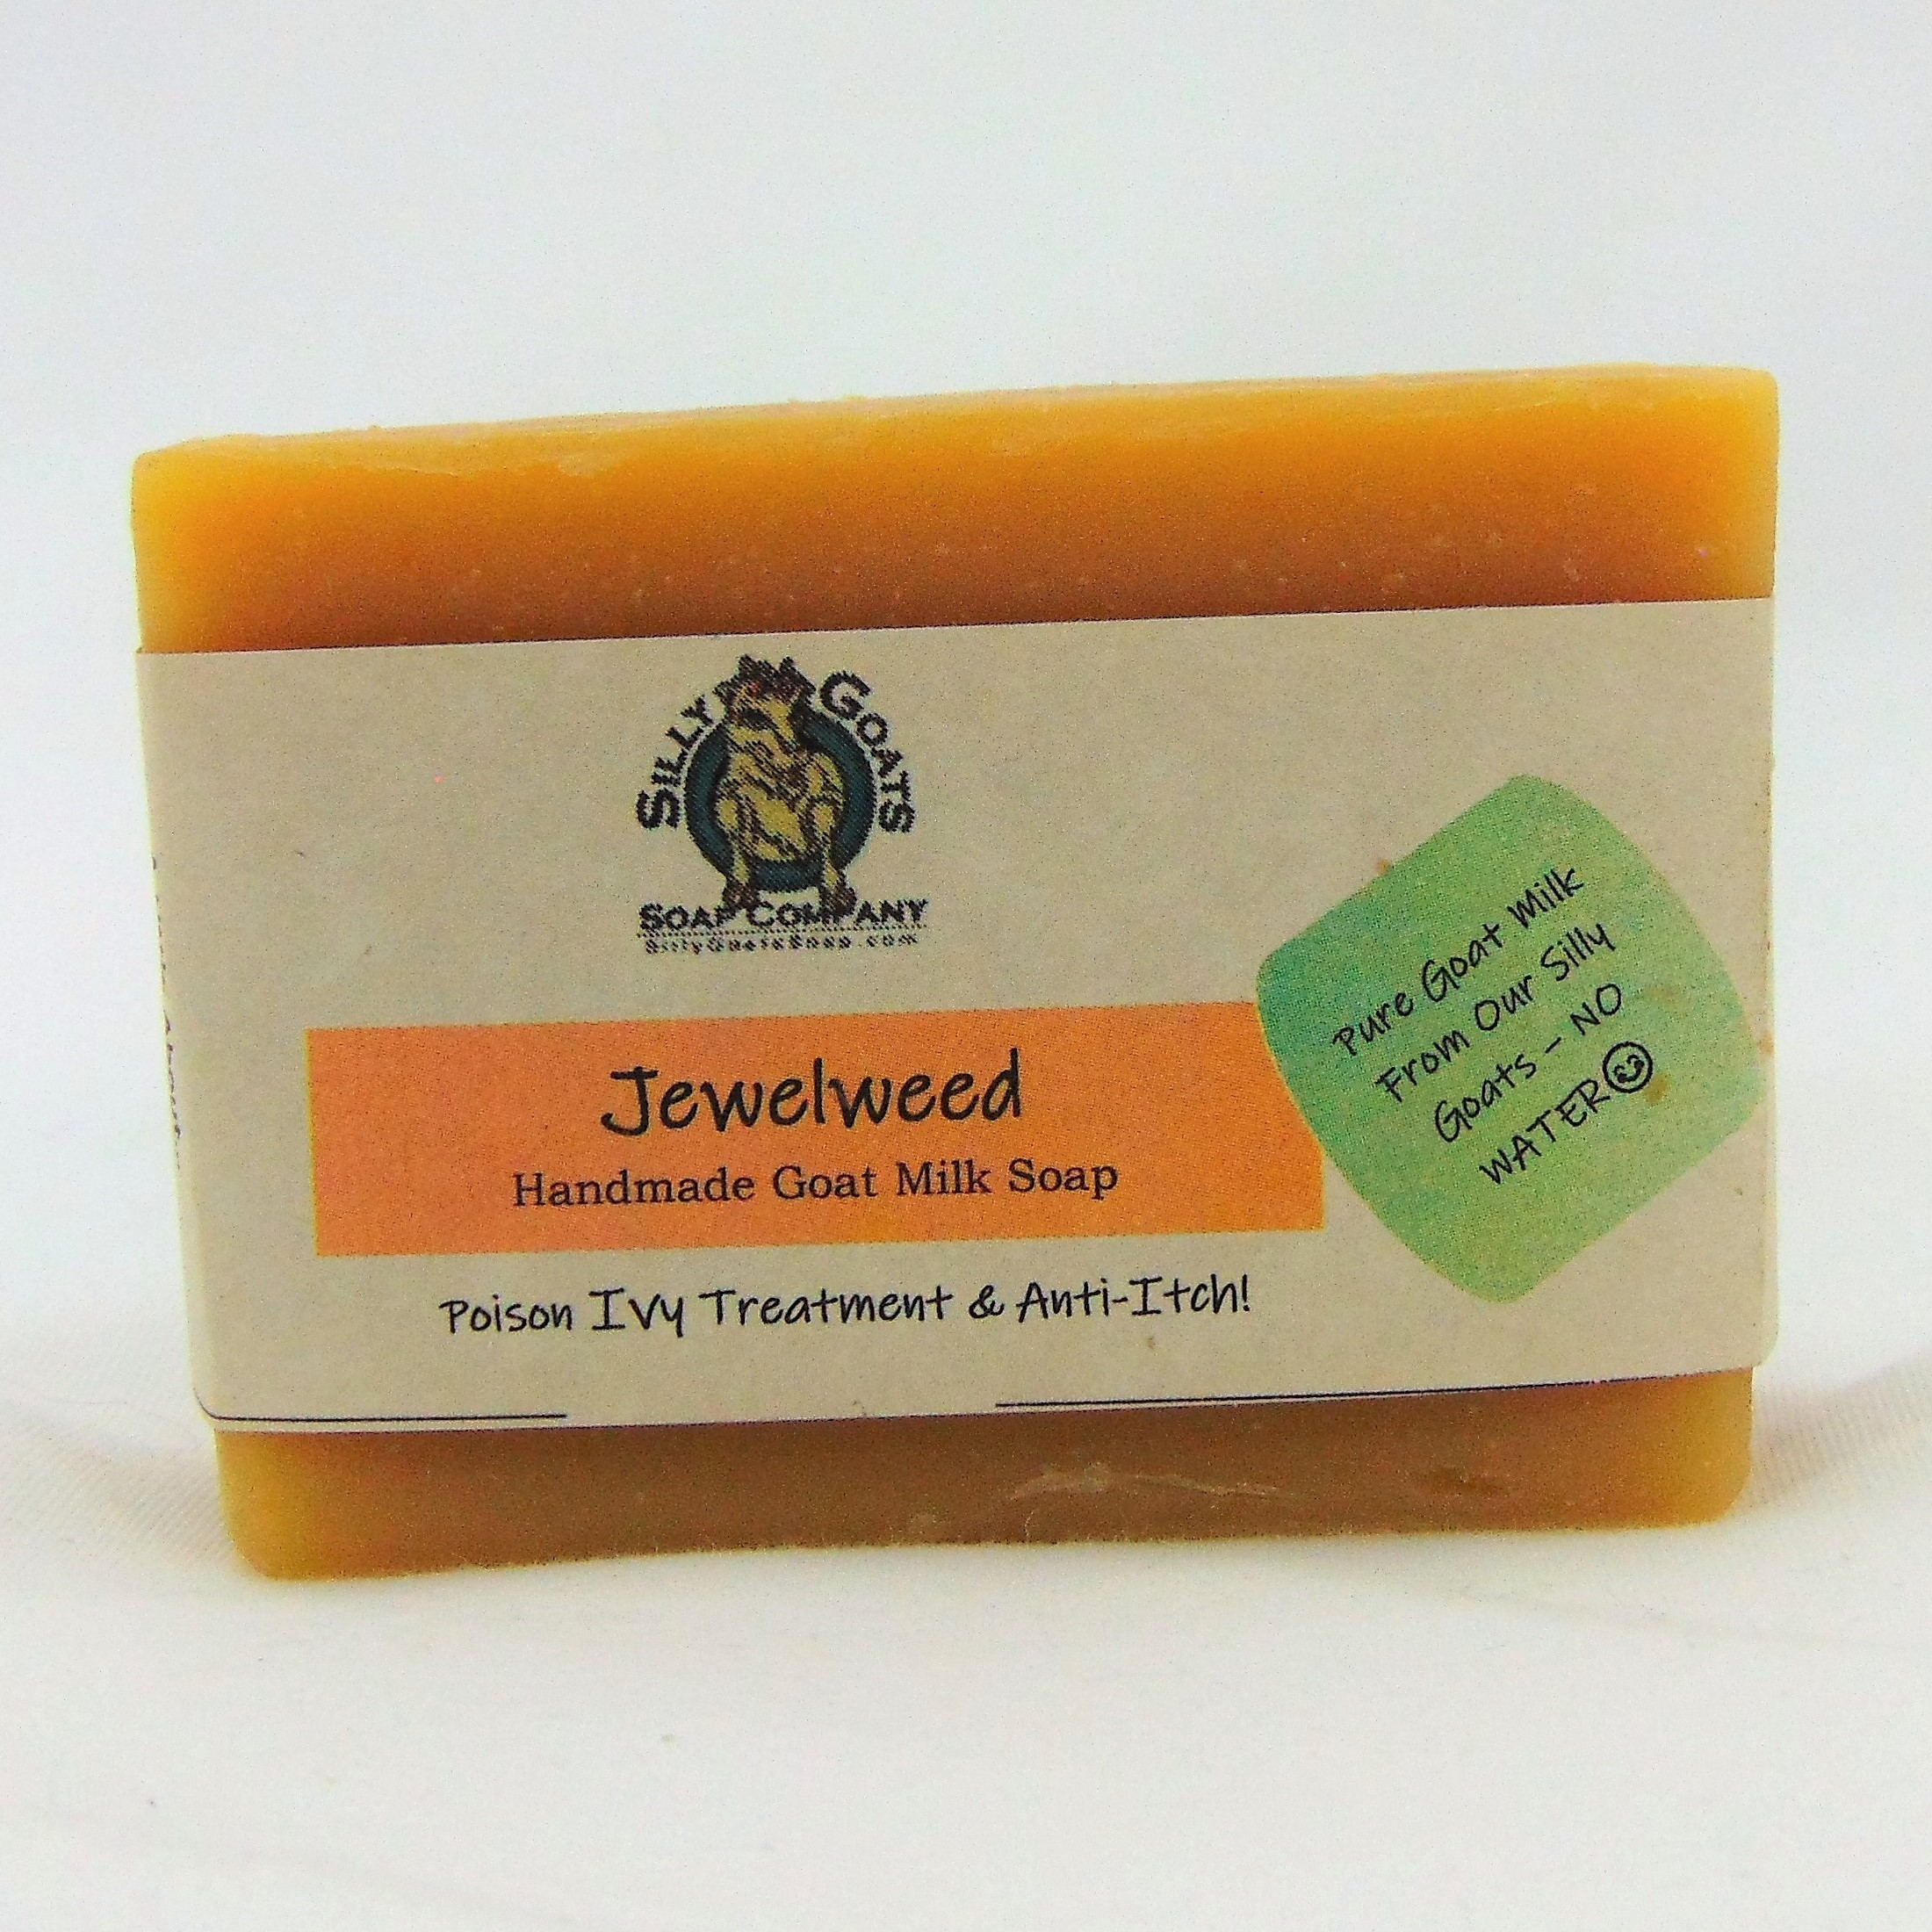 Jewelweed, Handmade Goat Milk by Silly Goats Soap Co.